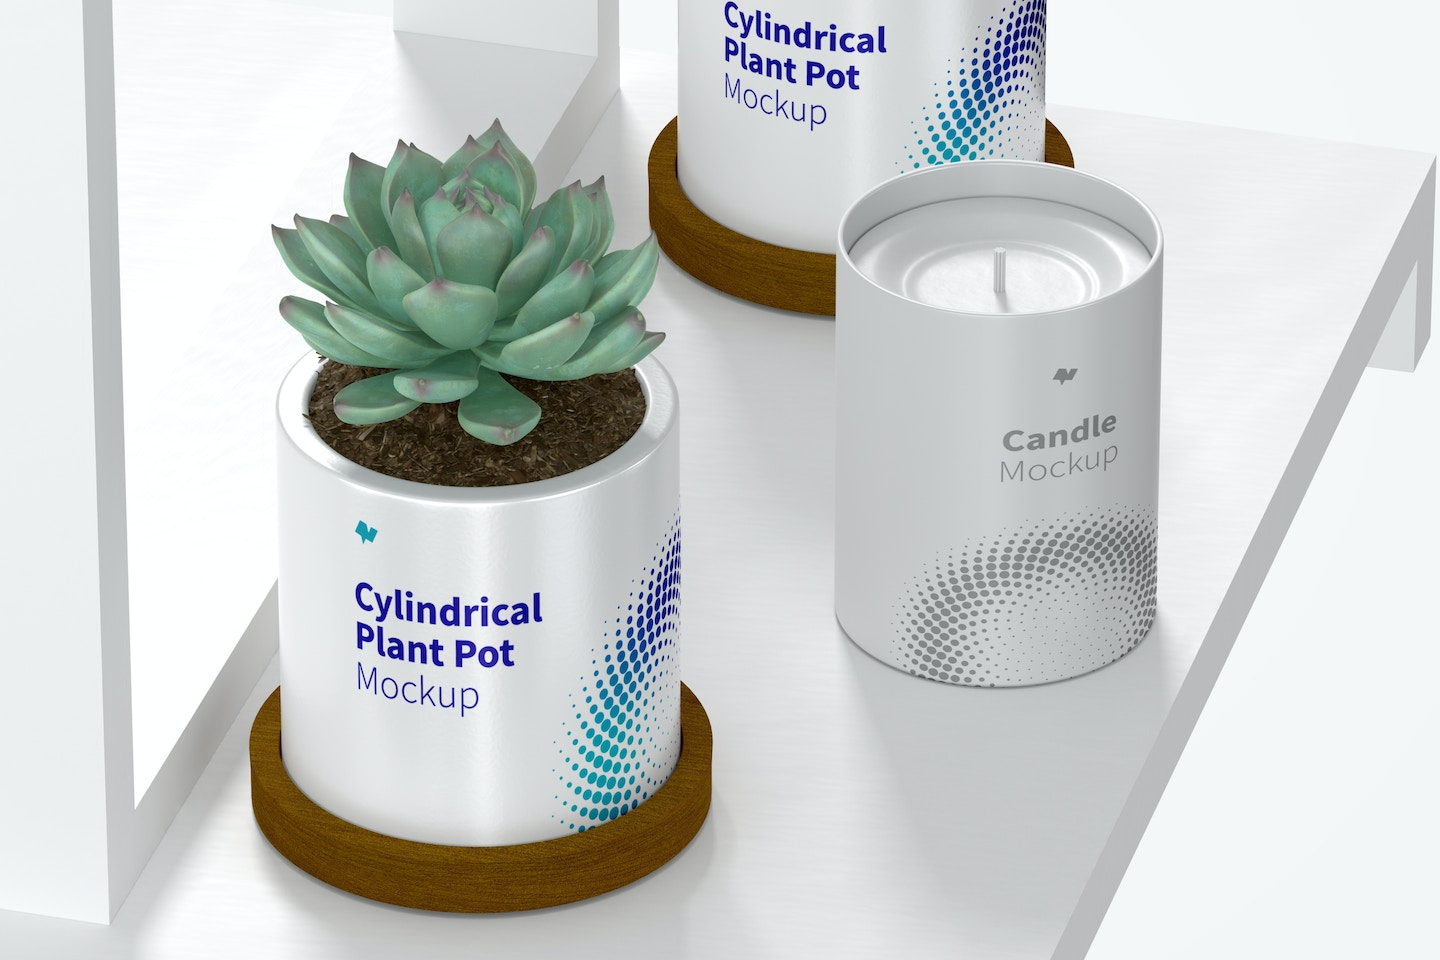 Ceramic Cylindrical Plant Pot and Candle Mockup